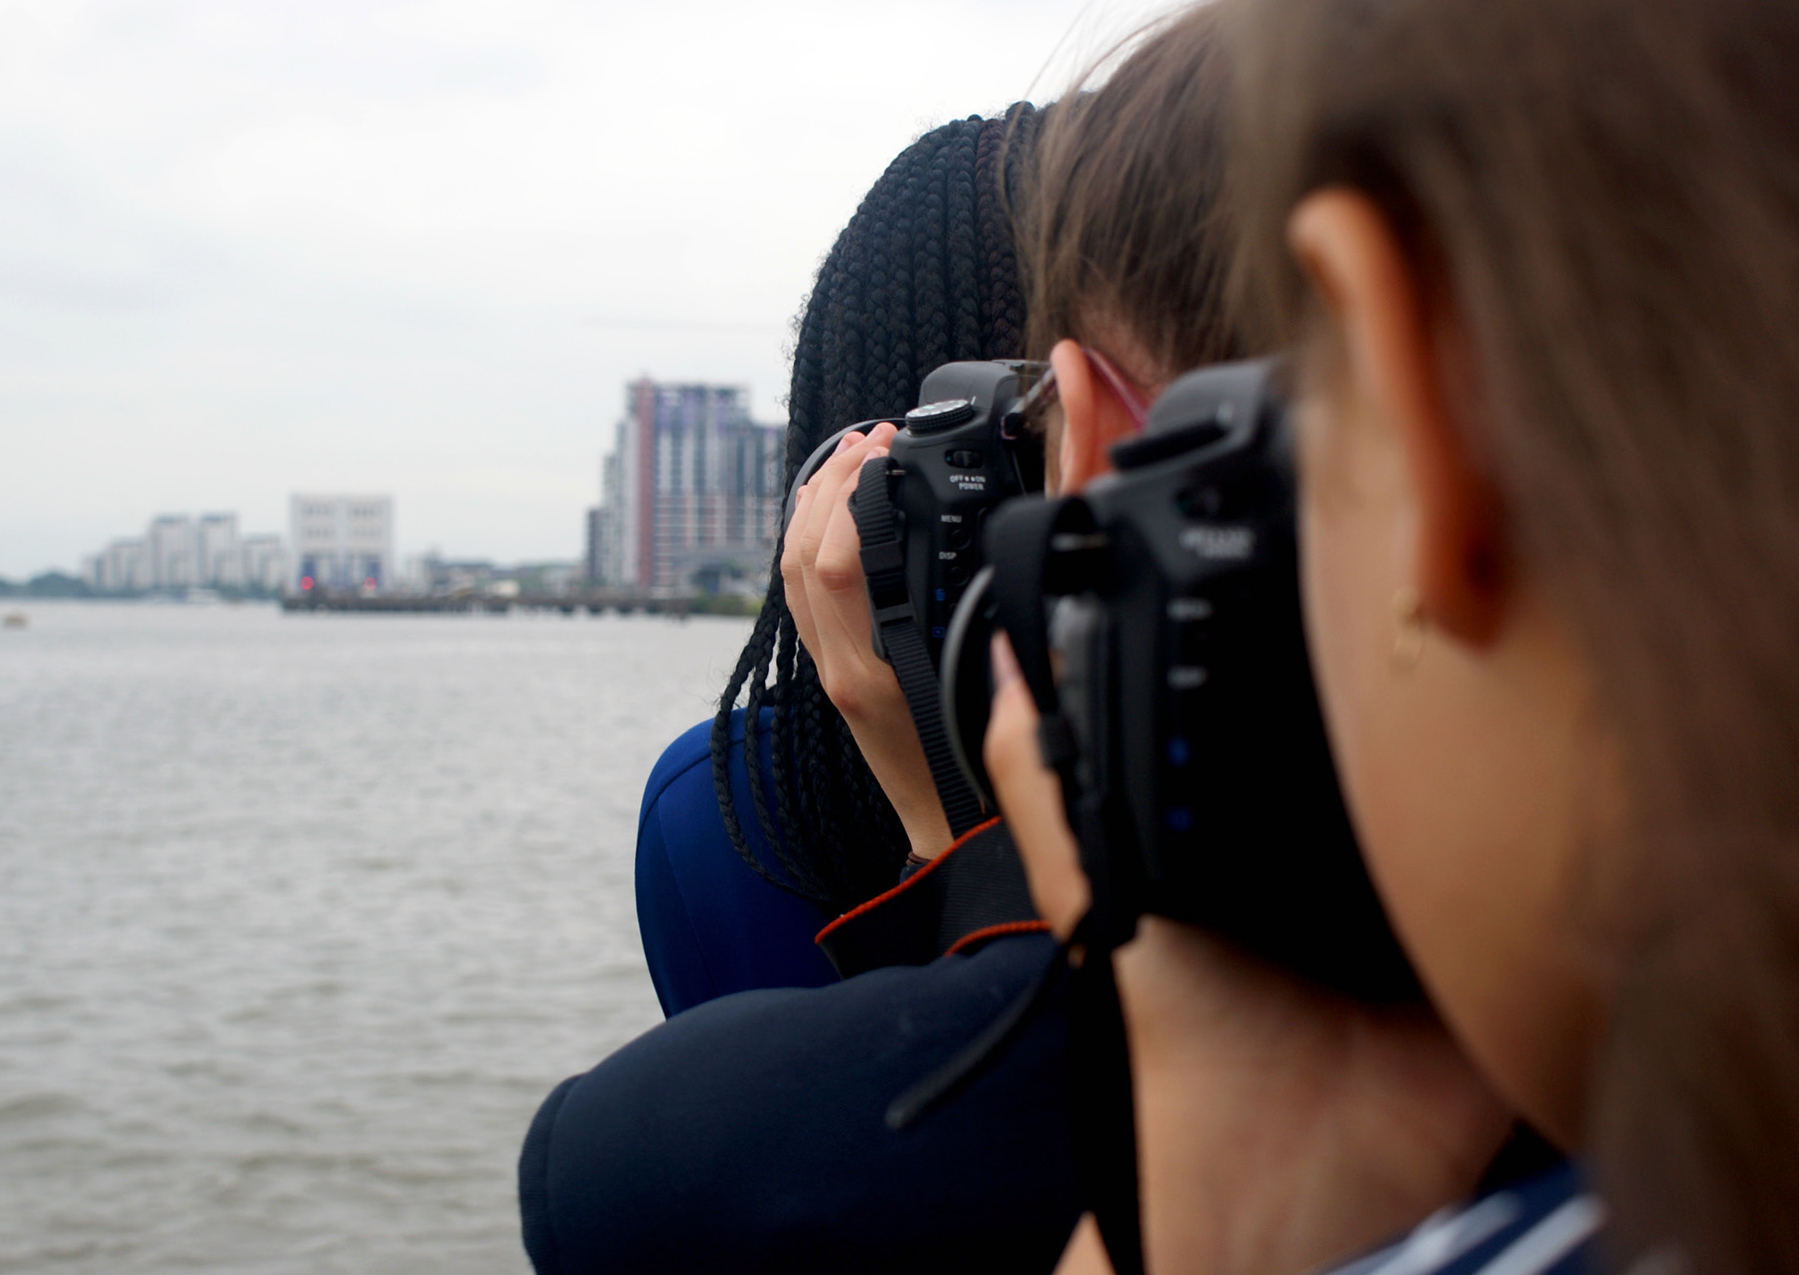 Photograph of three people using cameras to take pictures at the same landscape